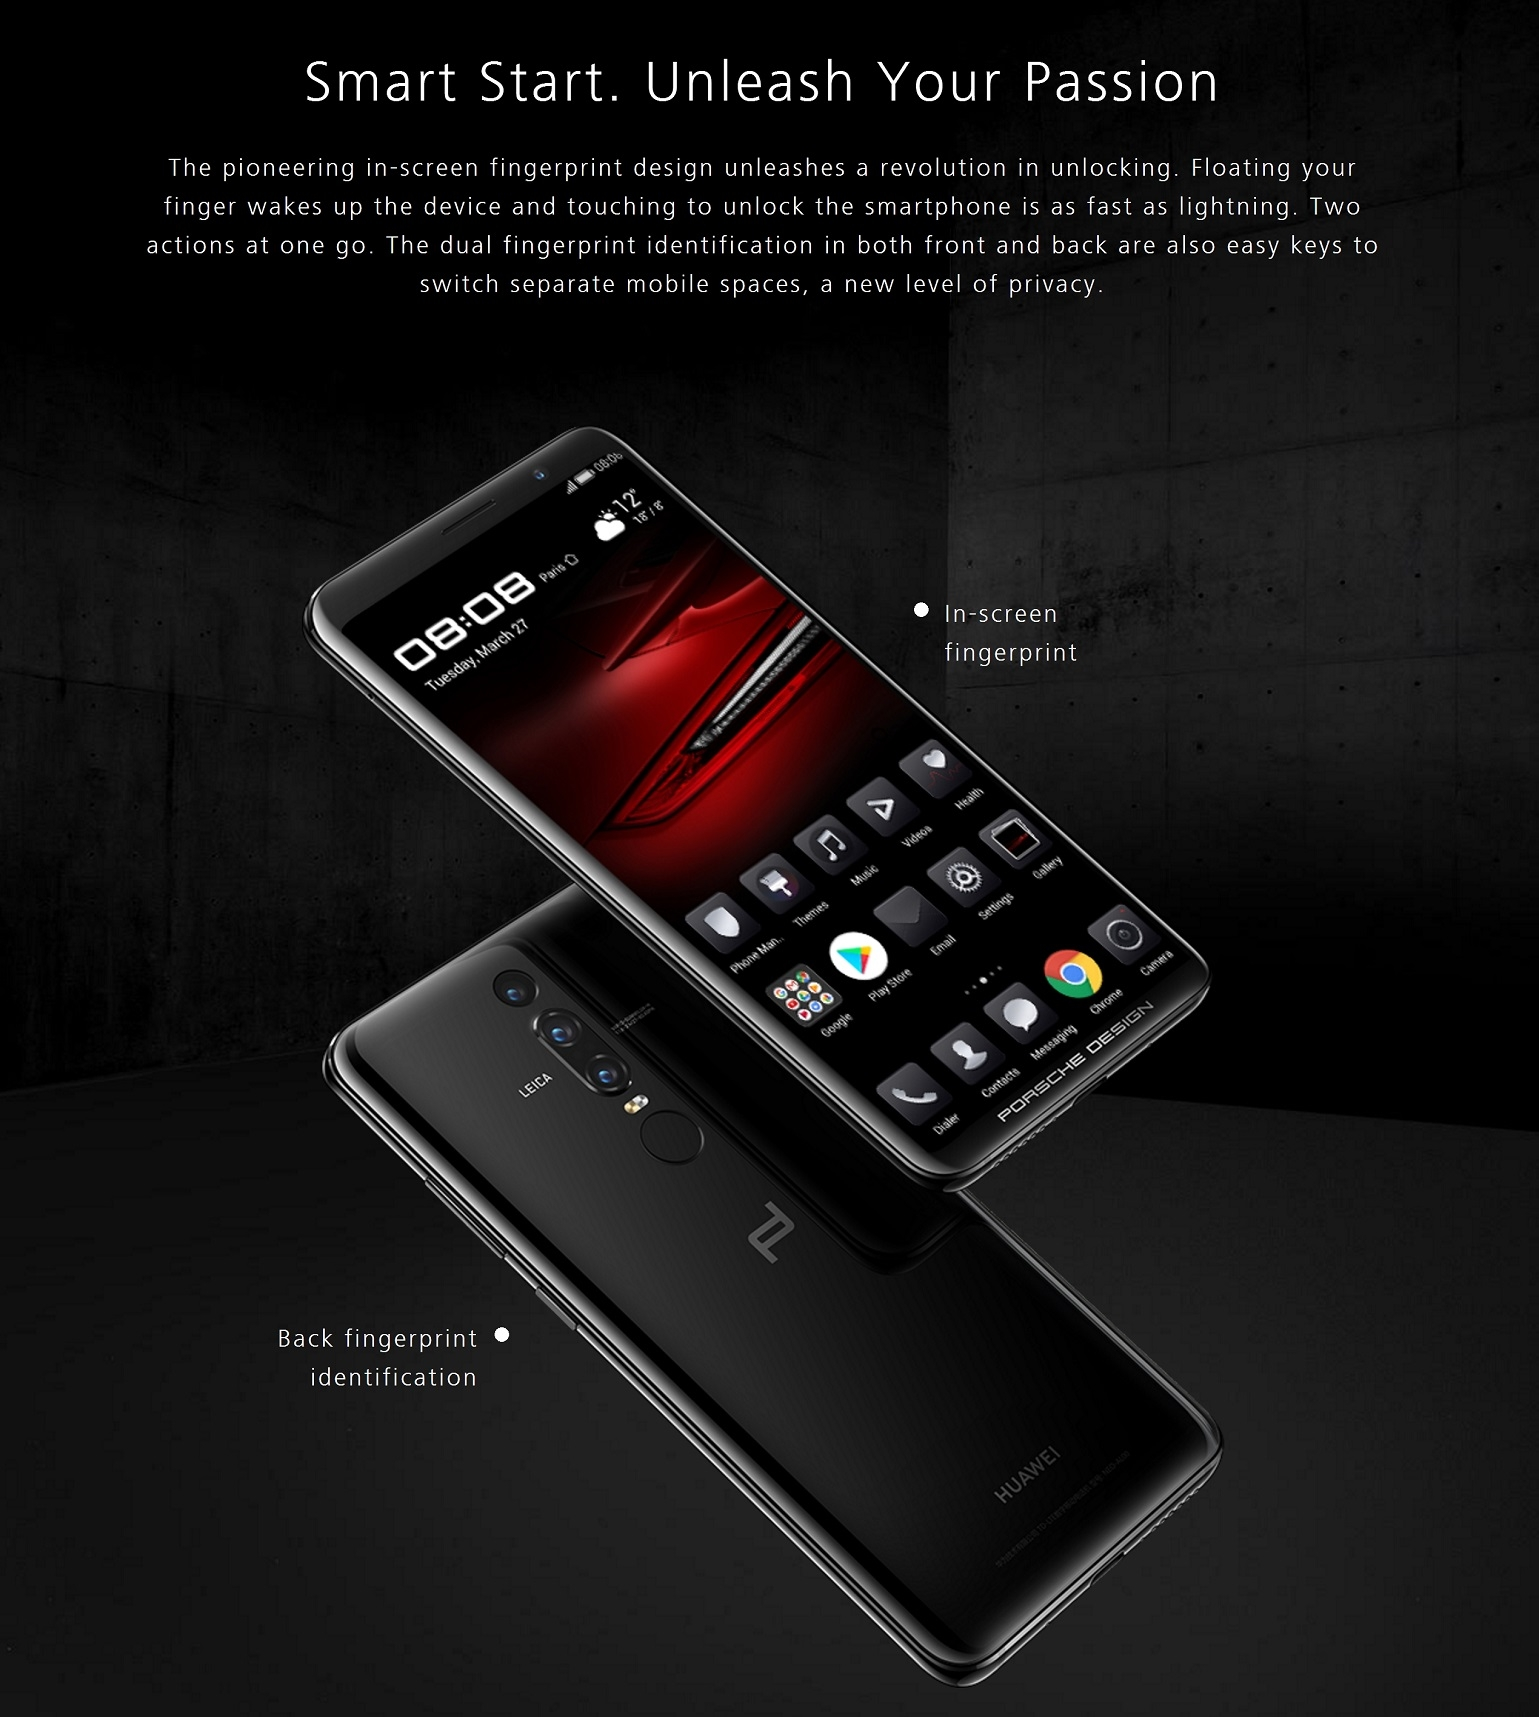 huawei mate rs porsche design smartphone 6gb 512gb. Black Bedroom Furniture Sets. Home Design Ideas